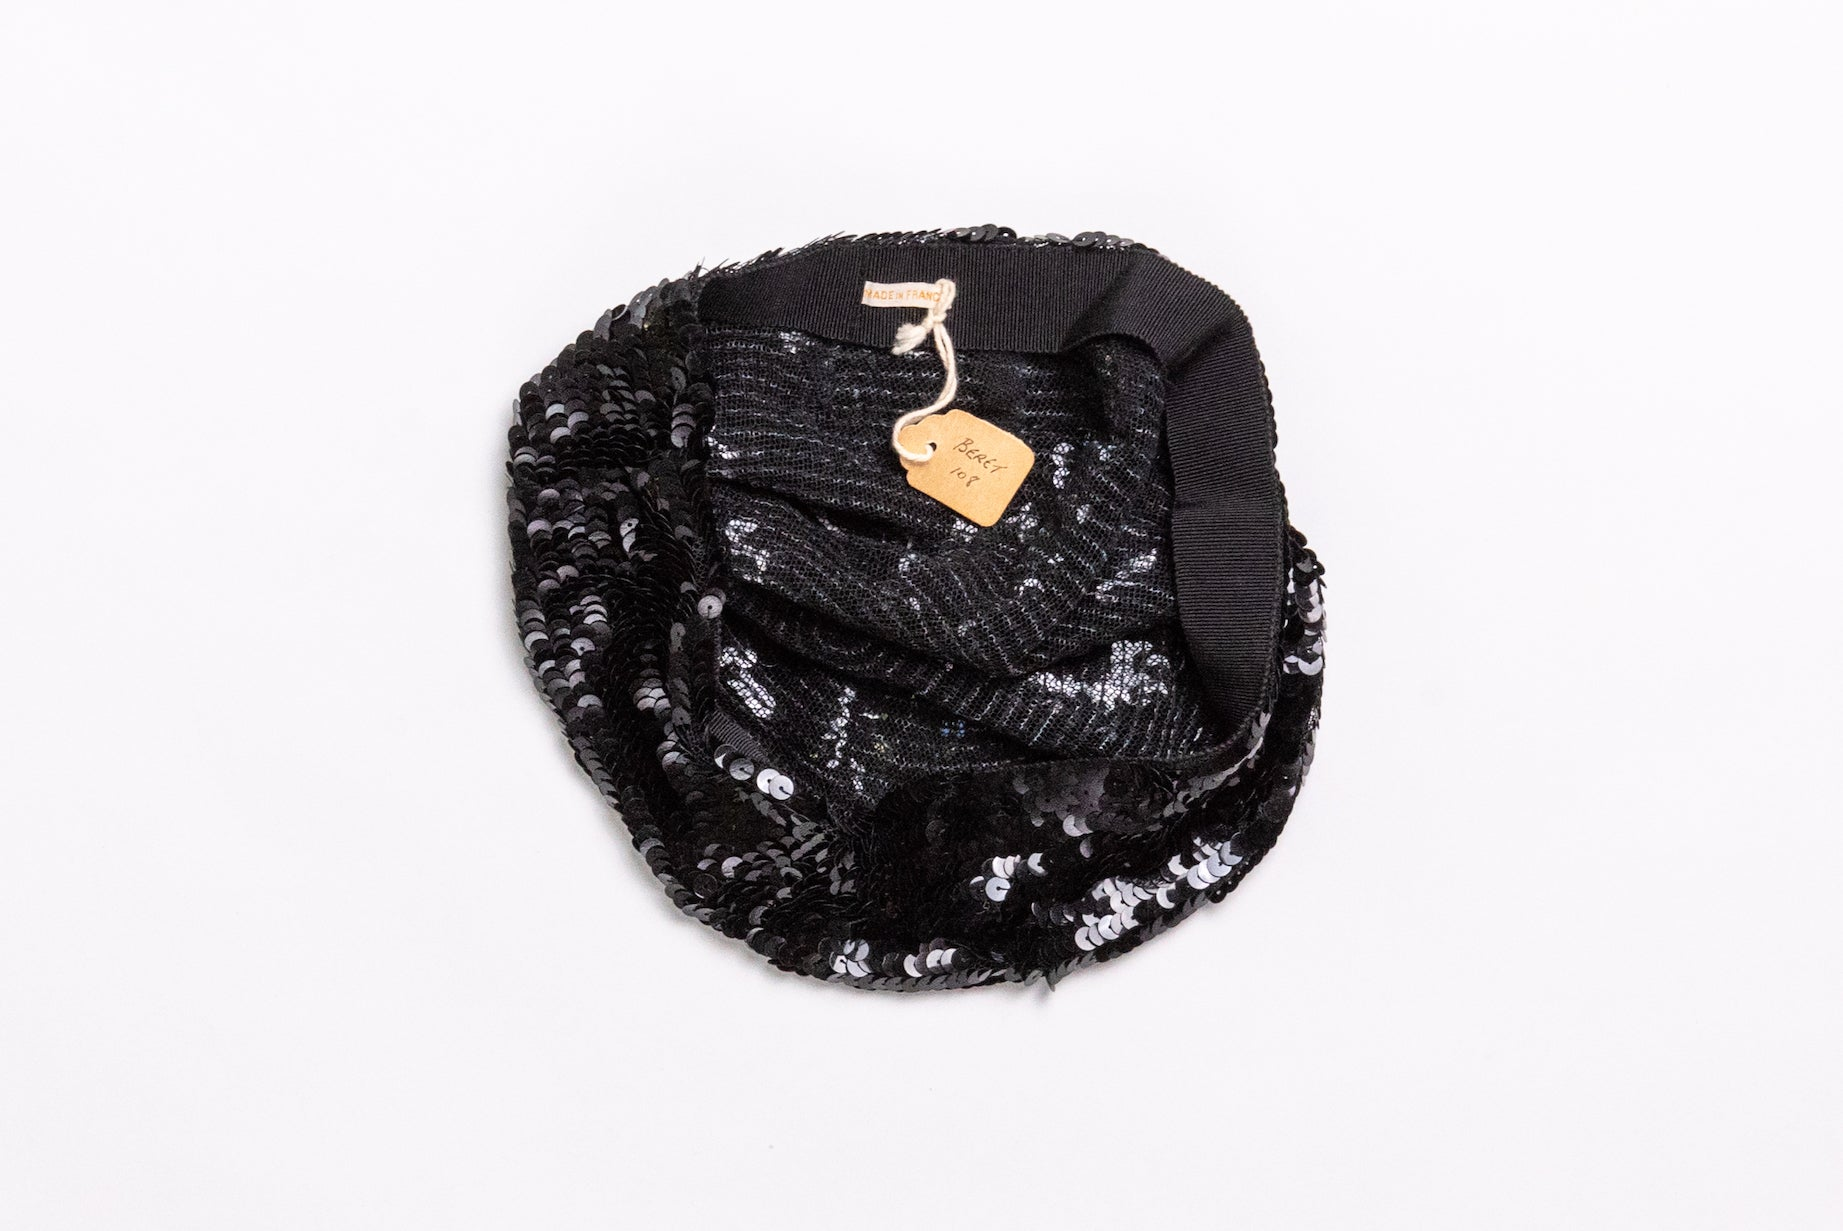 Vintage <br> Early 20th century French black sequin beret